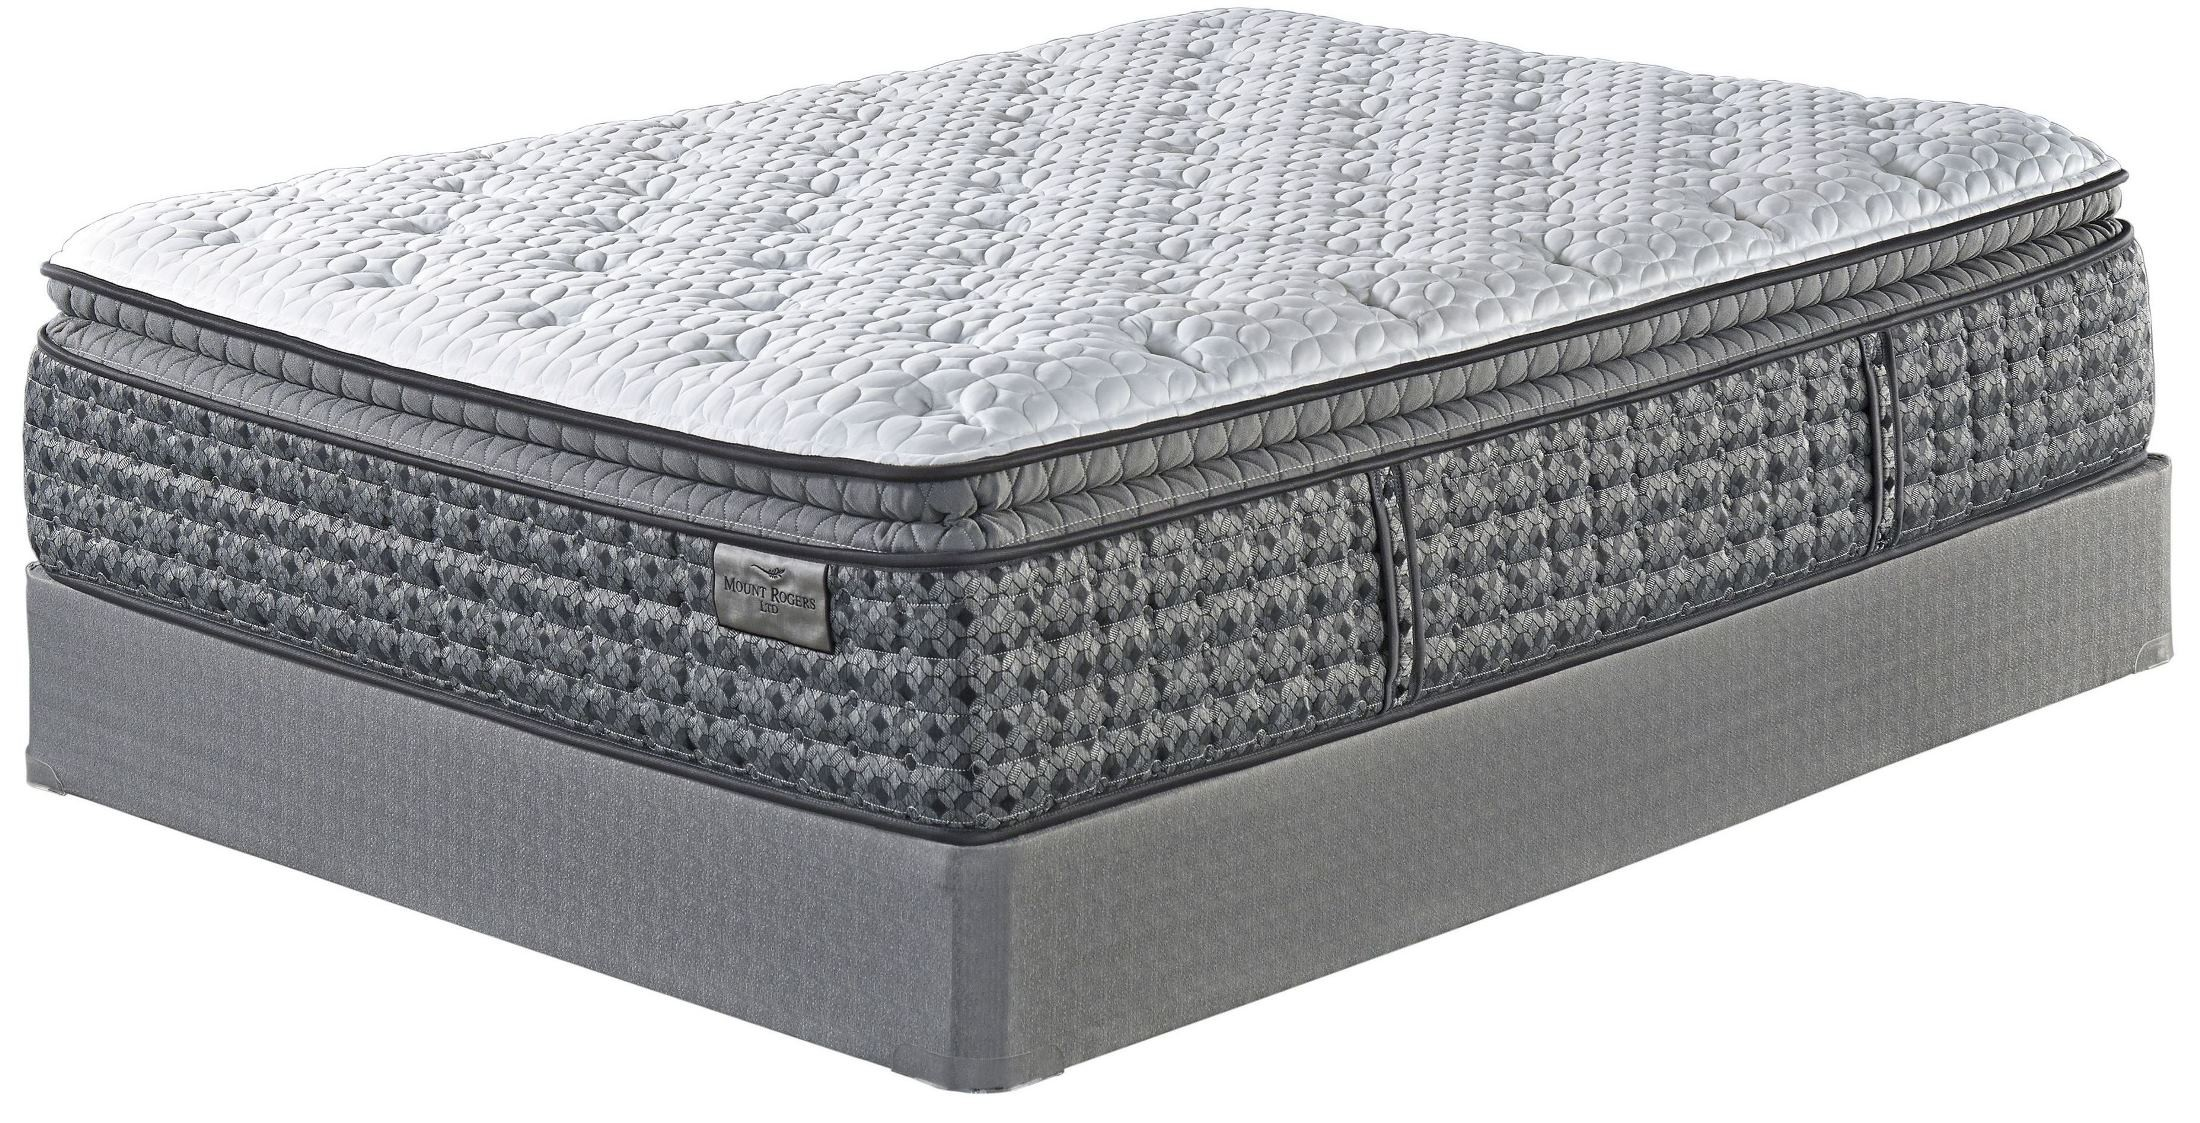 Mt rogers pillowtop white king mattress from ashley m90541 coleman furniture Mattress king